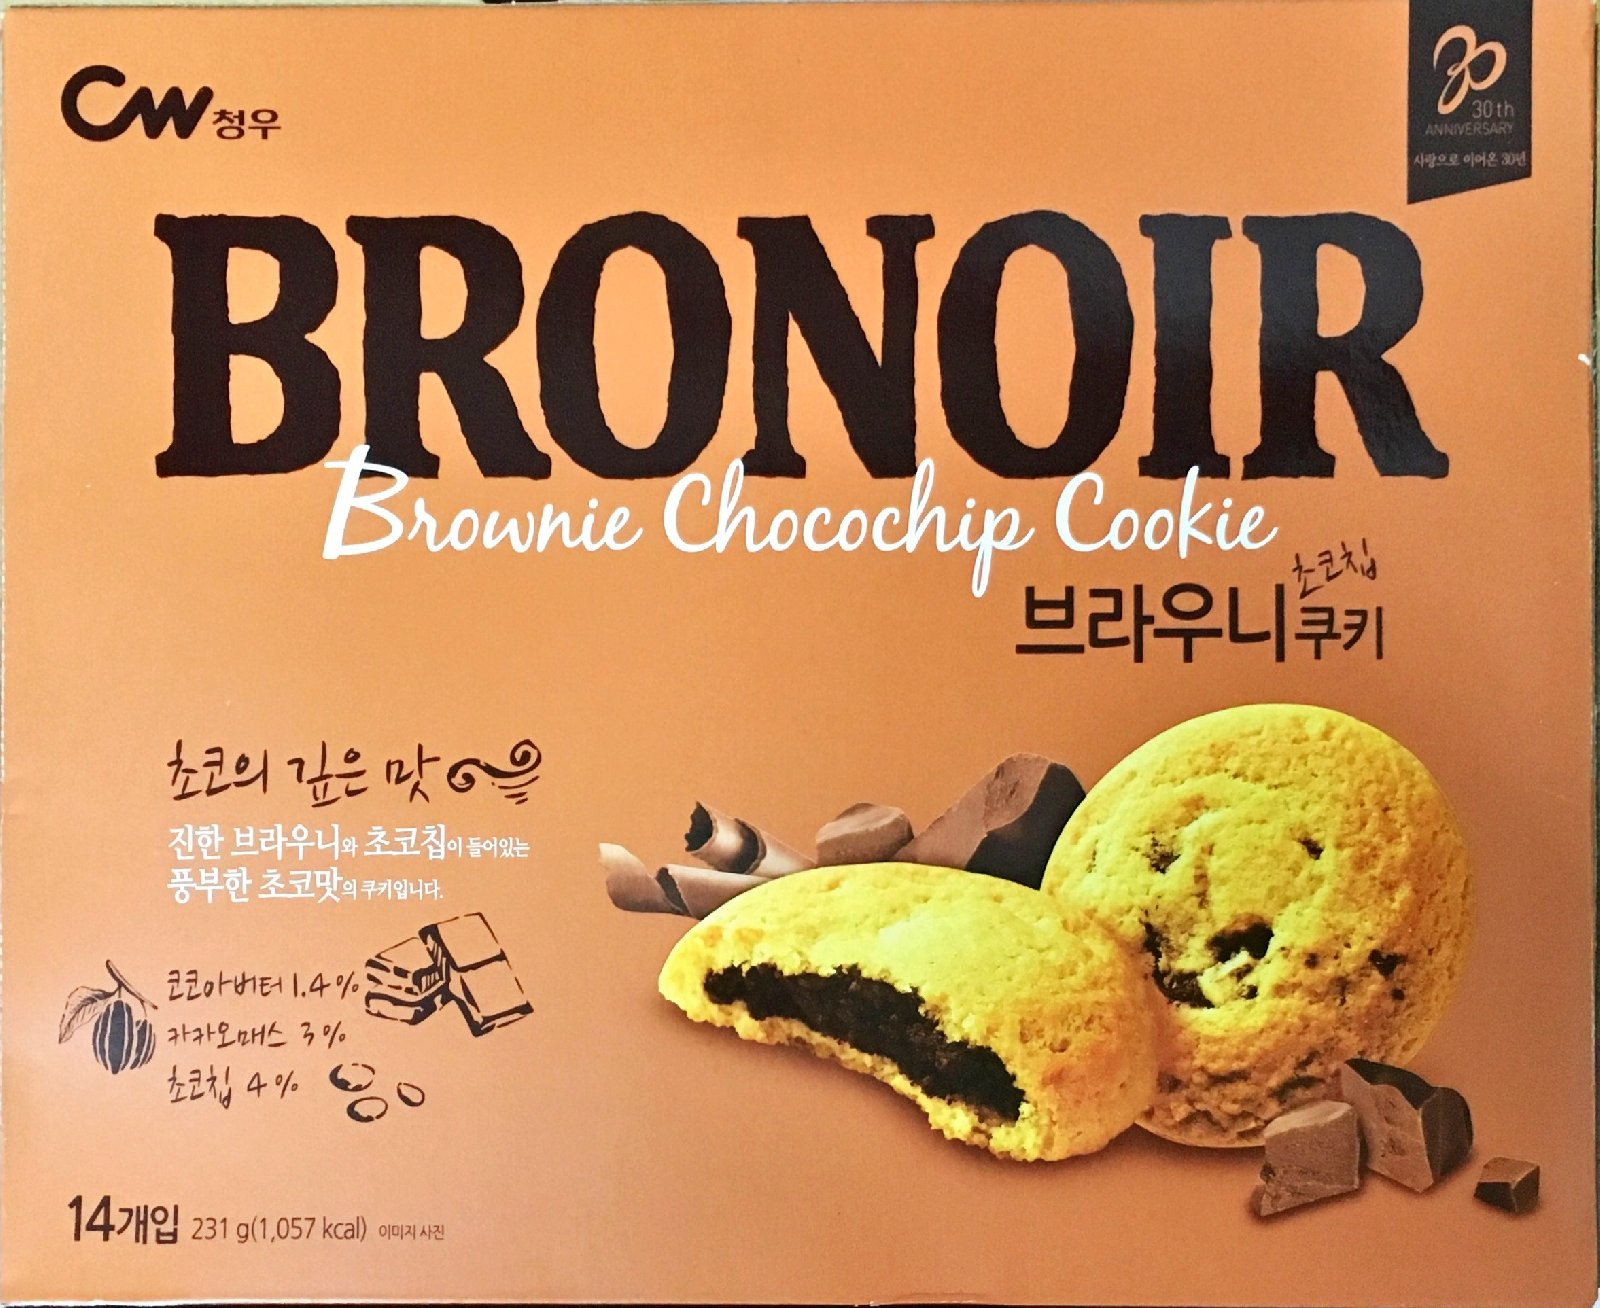 Chungwoo Brunua (Chocolate Cookies)